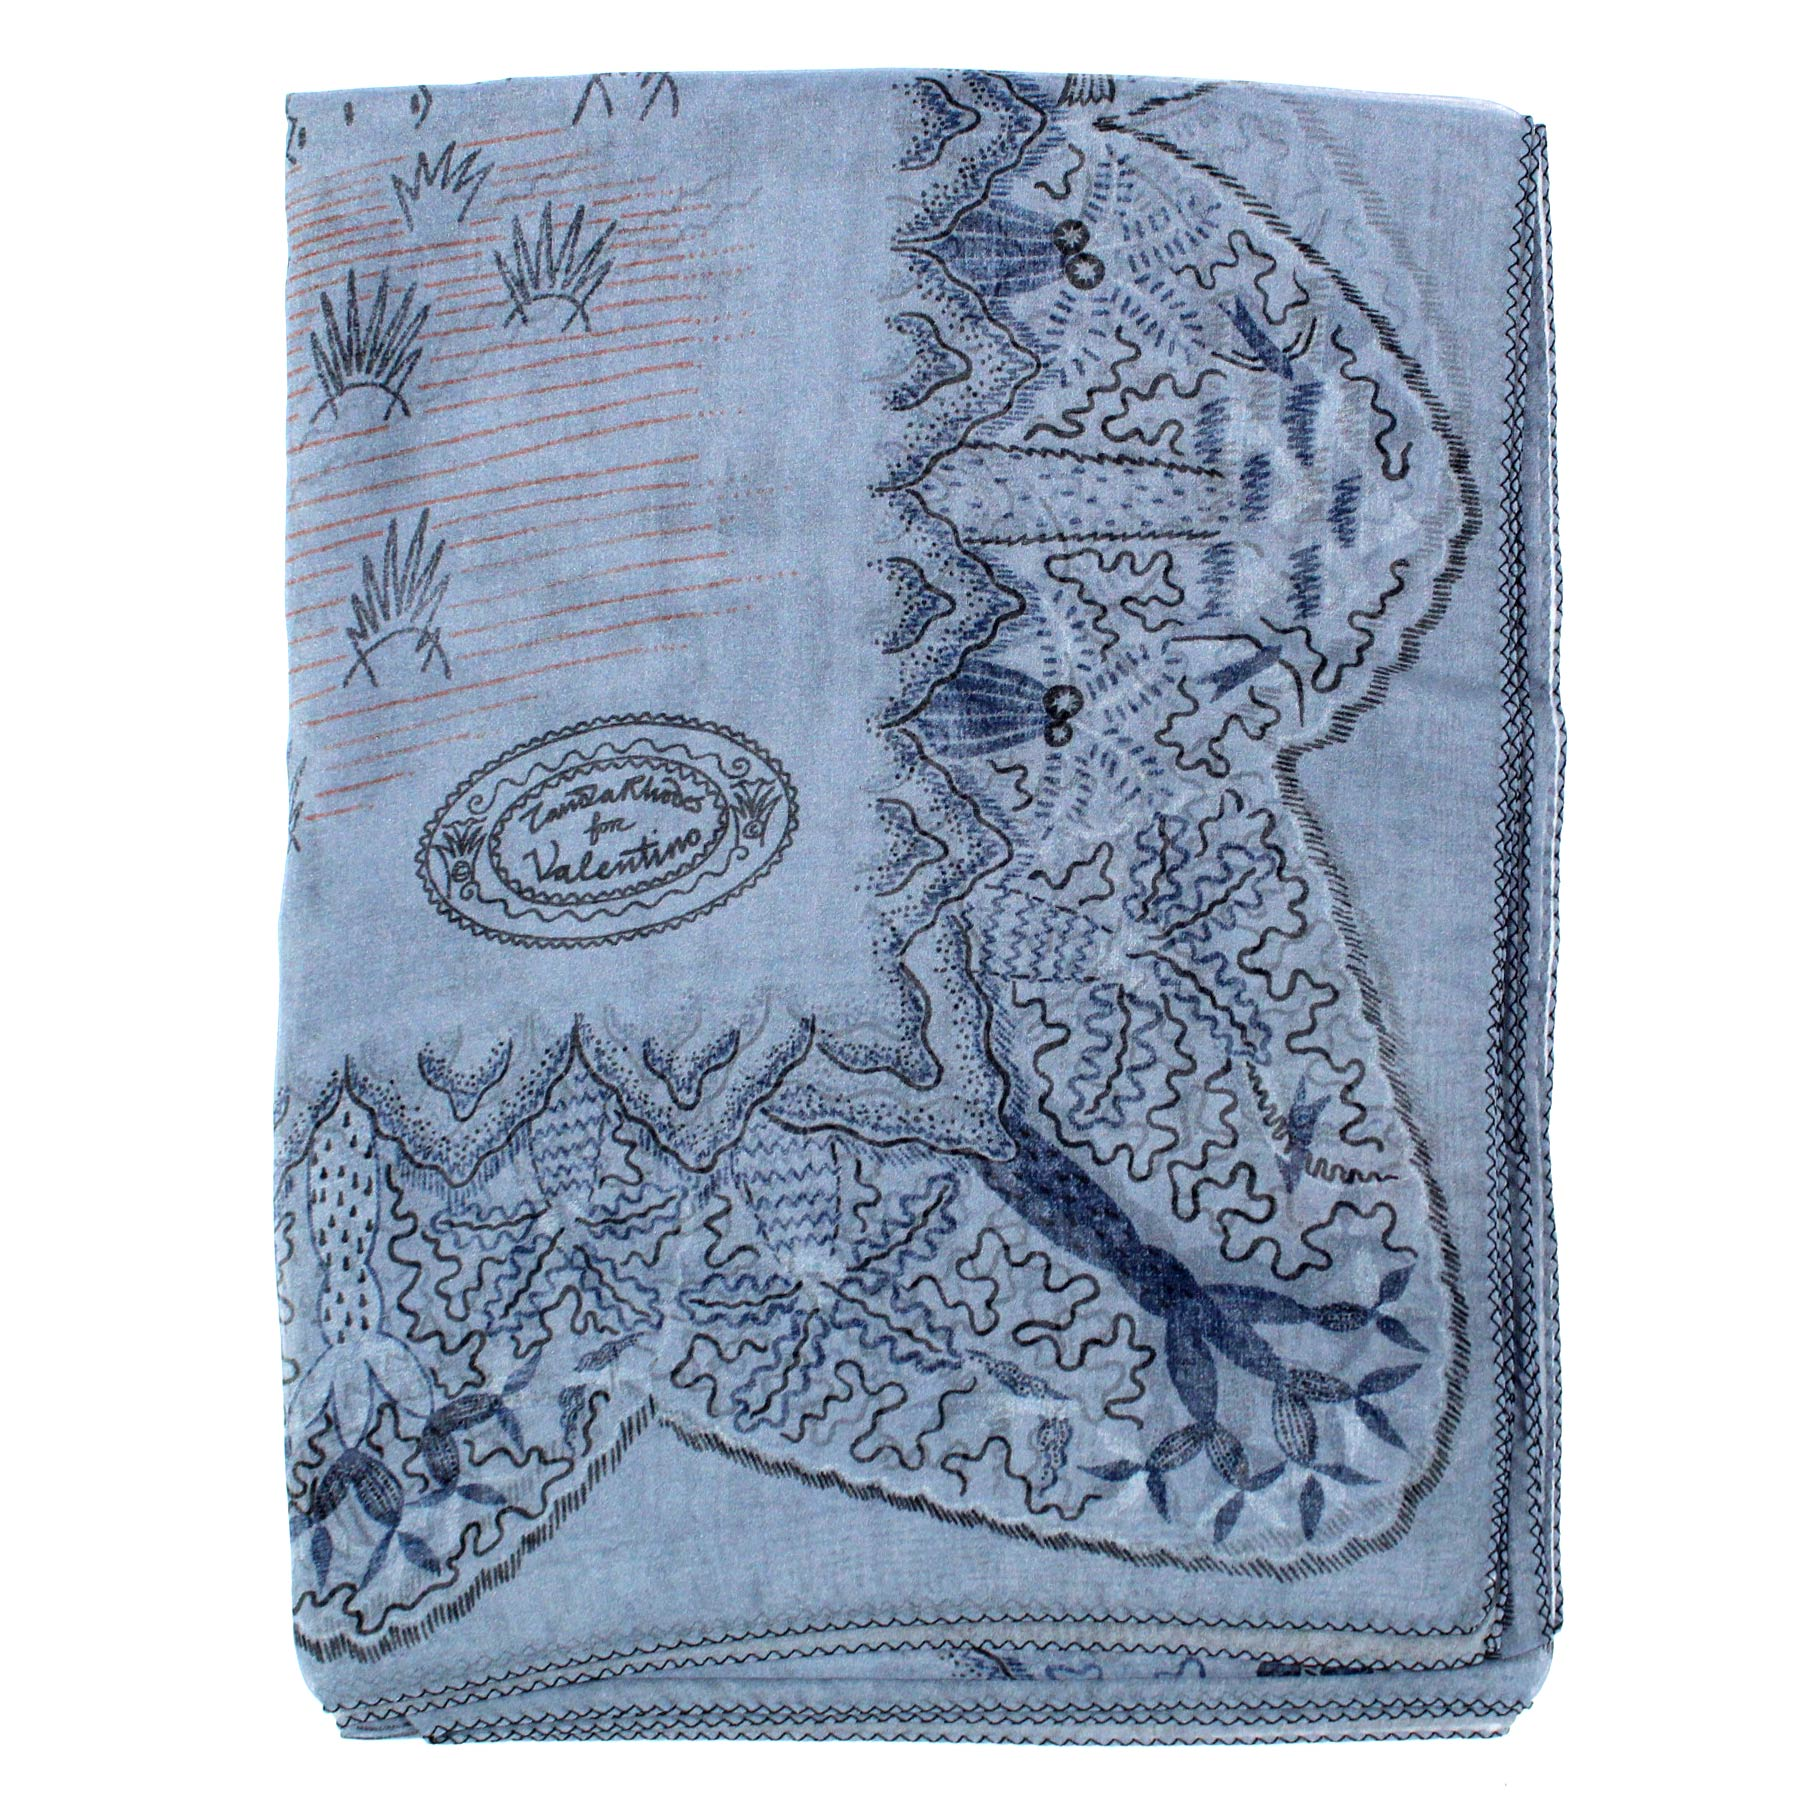 Valentino Scarf Gray Midnight Blue Hieronymus Bosch Garden - Extra Large Square Chiffon Silk Wrap SALE